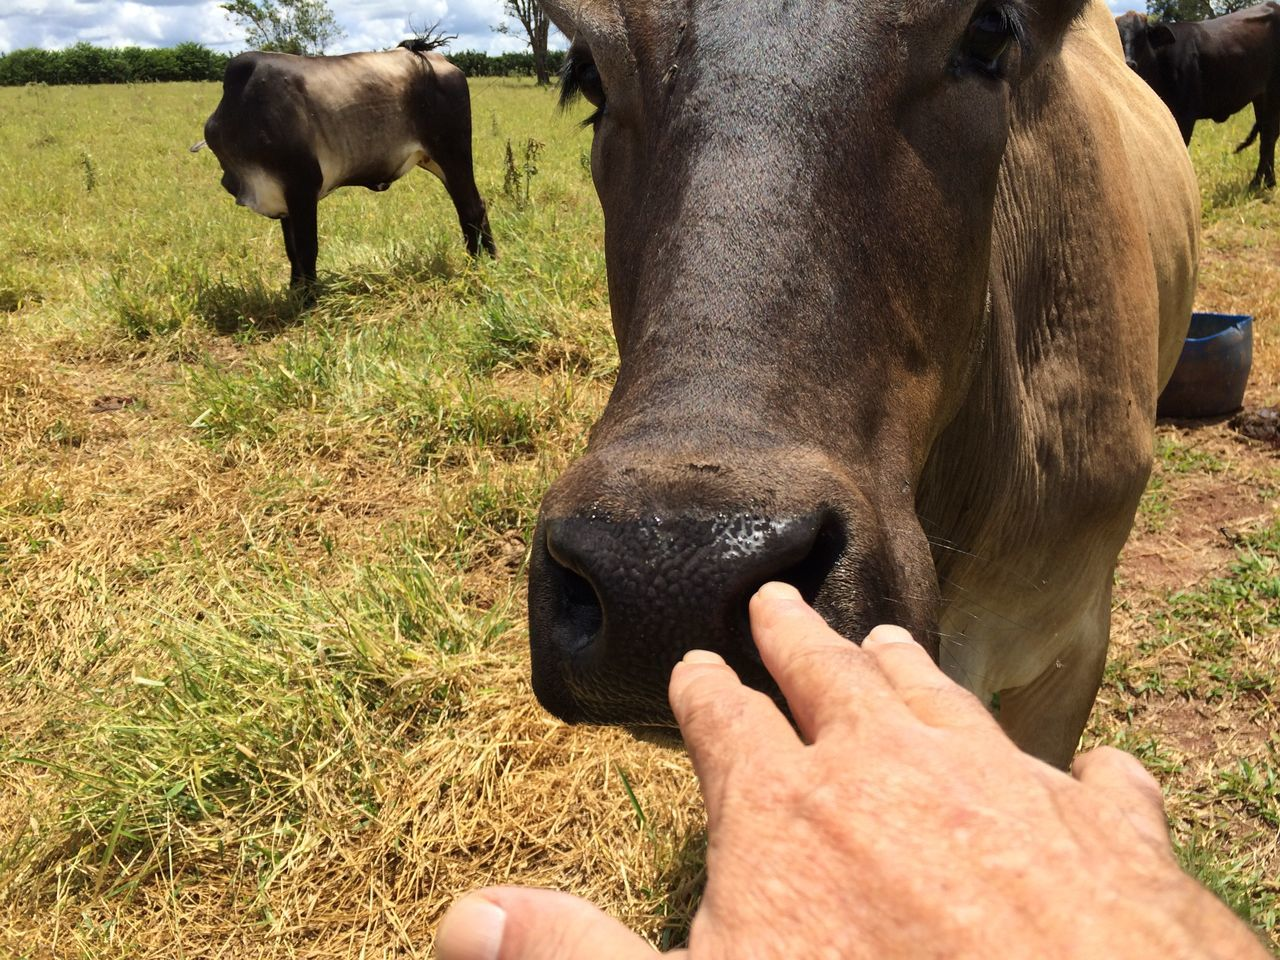 mammal, field, domestic animals, grass, livestock, day, nature, real people, outdoors, human hand, one animal, human body part, one person, men, close-up, people